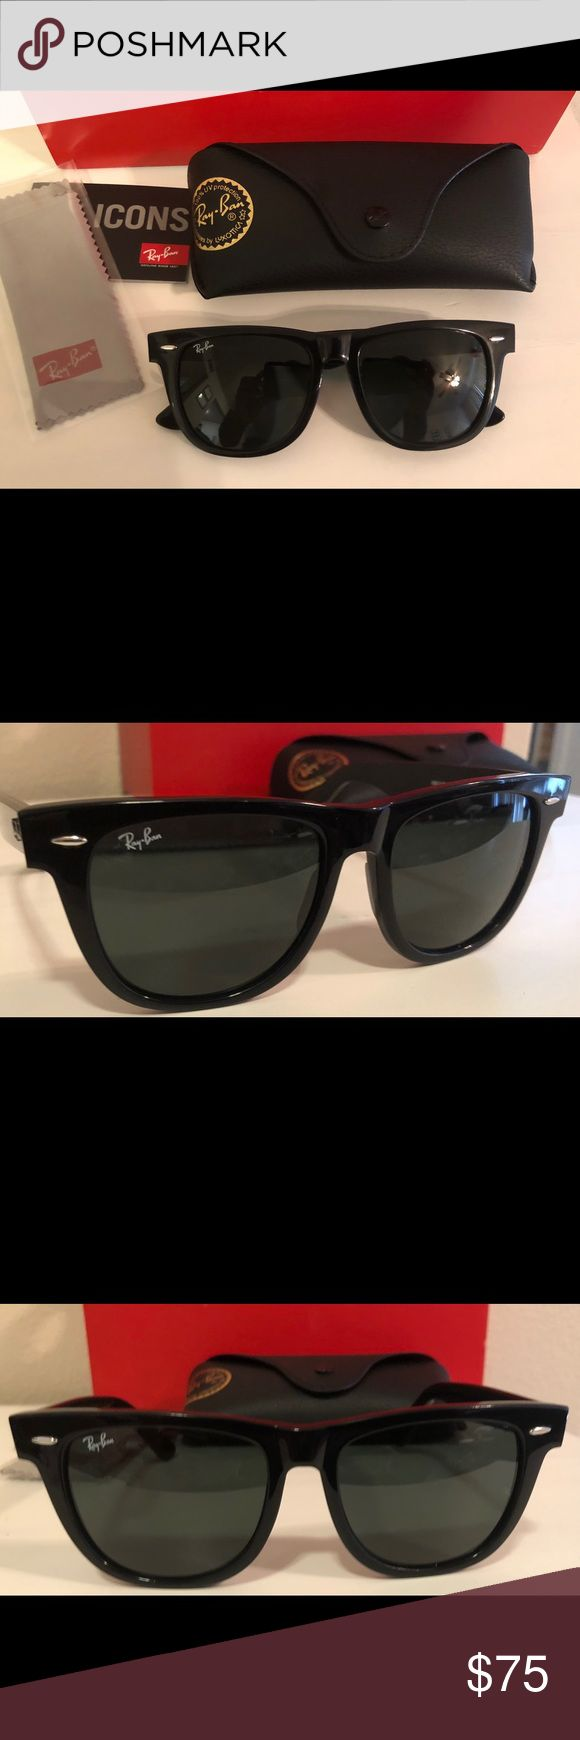 Ray-Ban Wayfarers RB2140 All Black Ray-Ban Wayfarers, size 54mm Large   Glasses are unisex. 100% Authentic and brand new. Ray-Ban Accessories Sunglasses